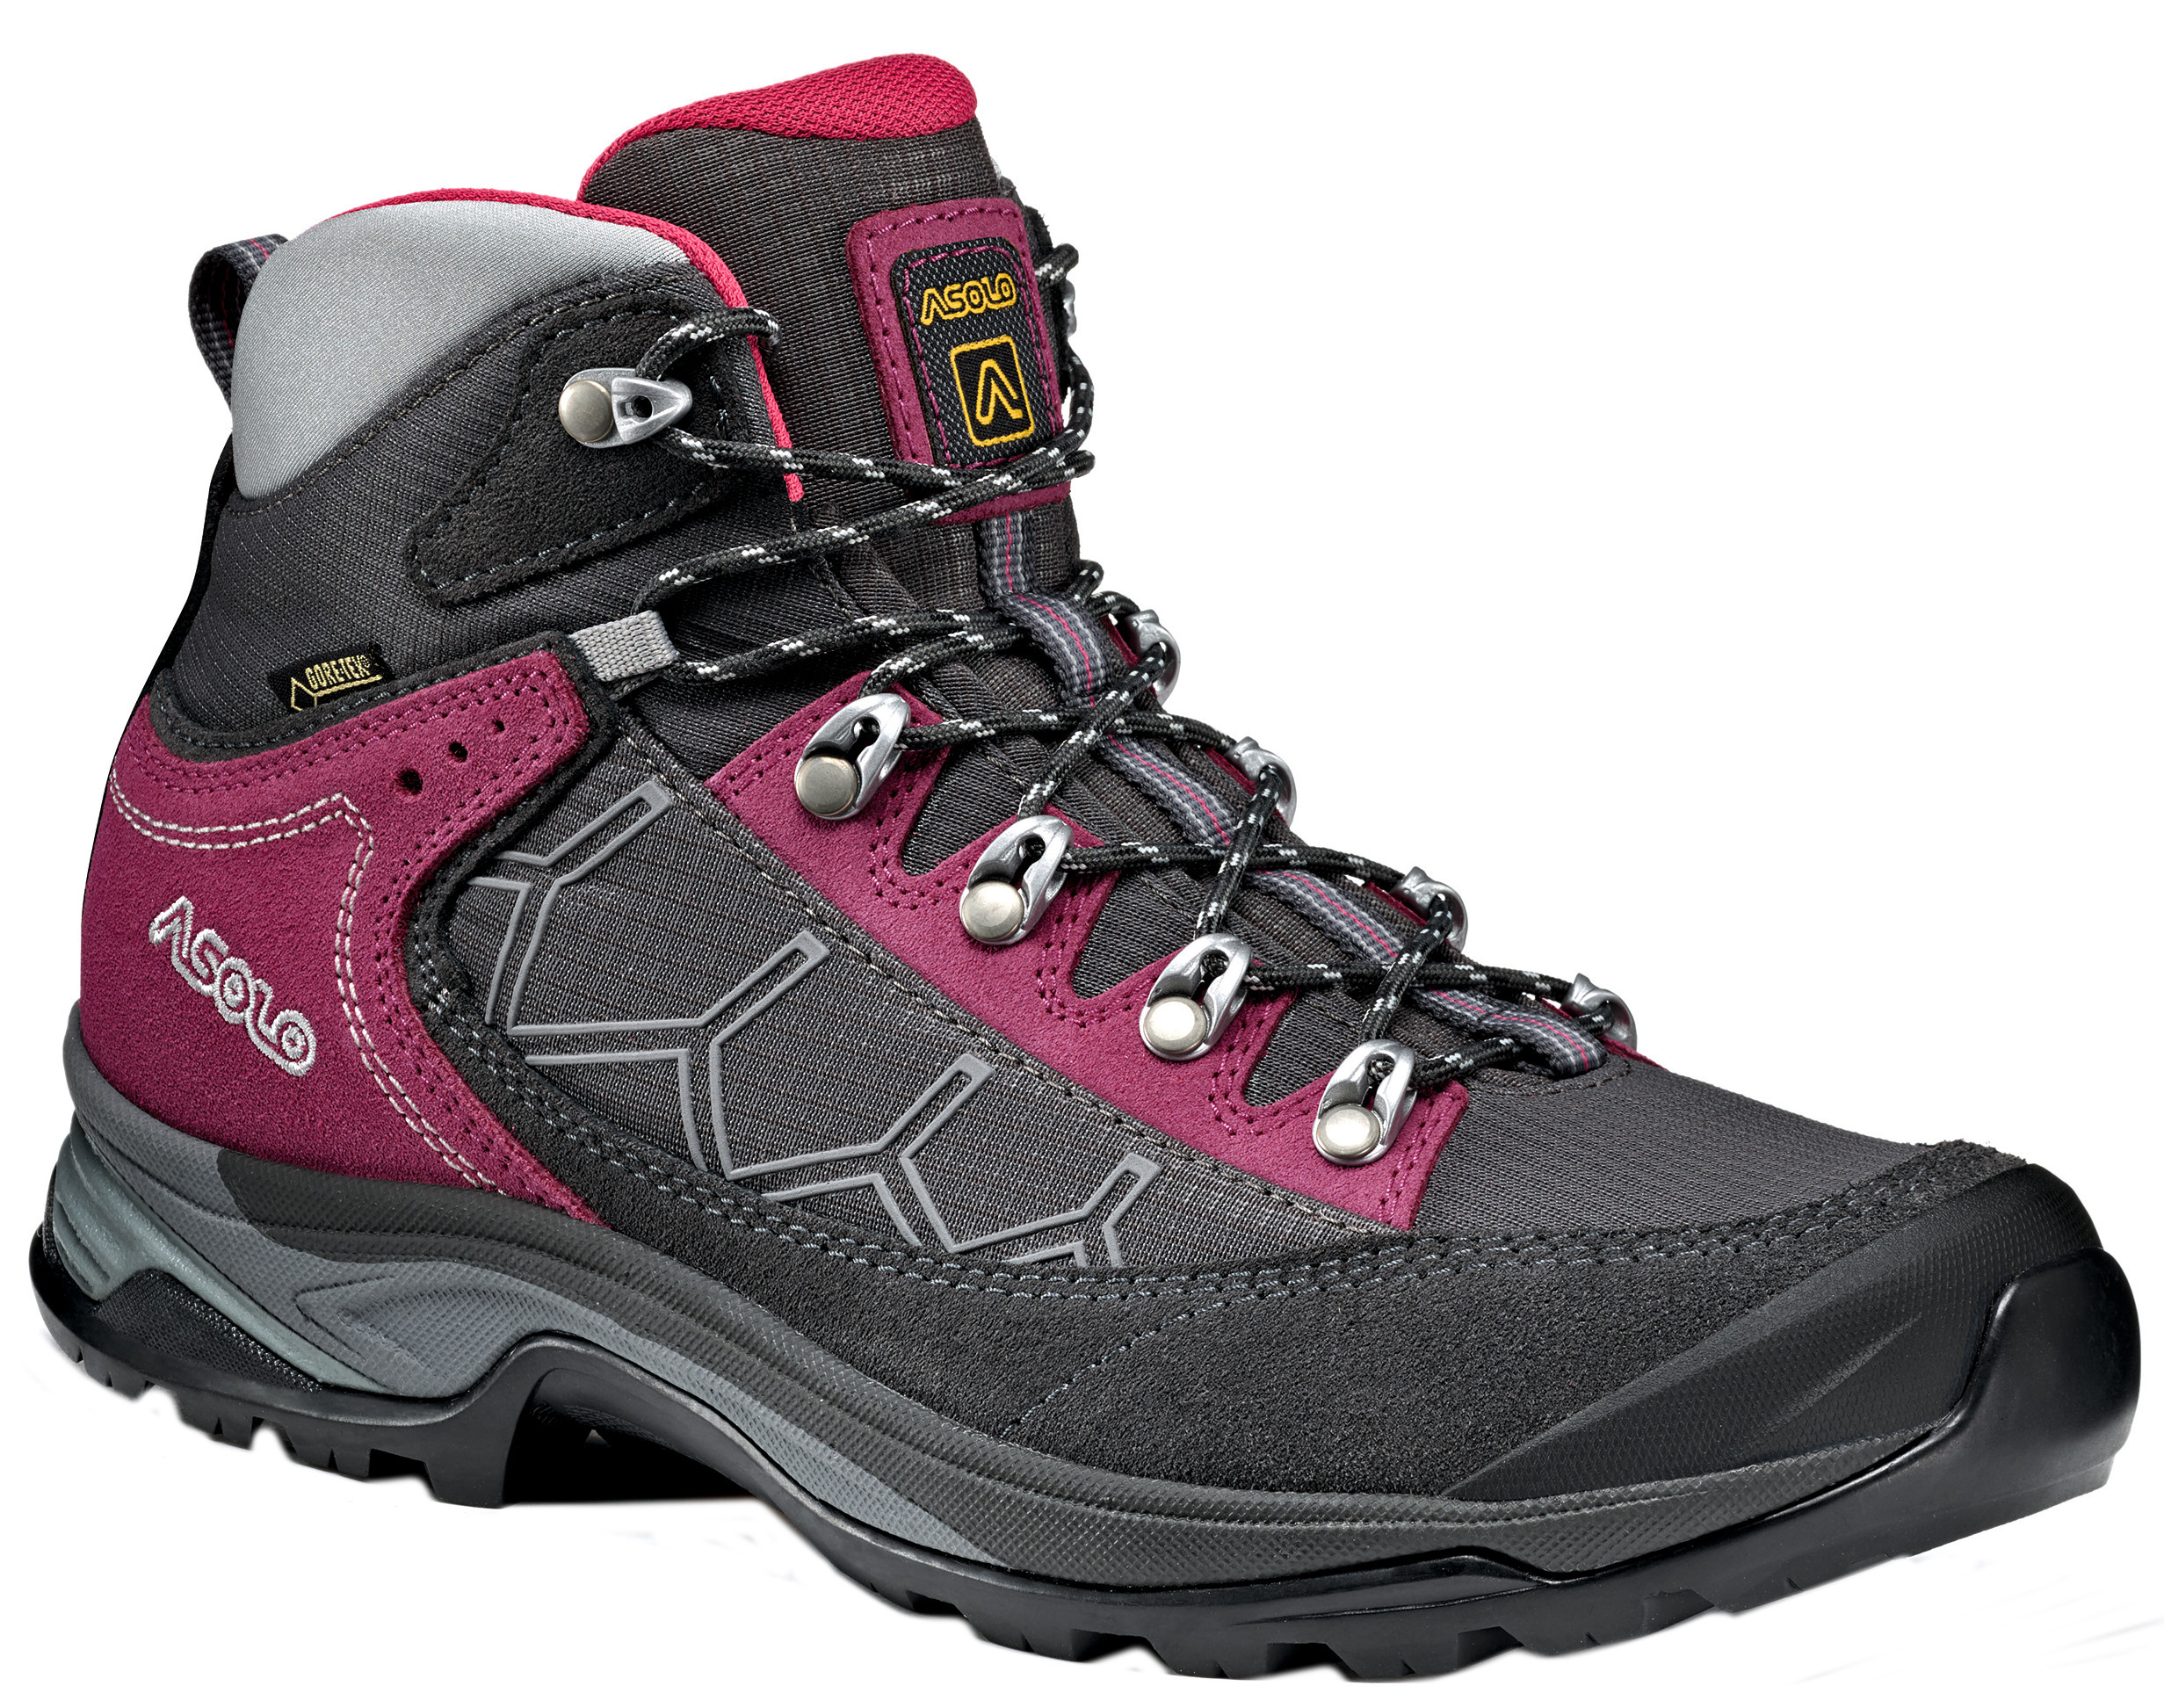 Boot Gtx Women's Gv Asolo Falcon Hiking 0PNXZ8nwOk